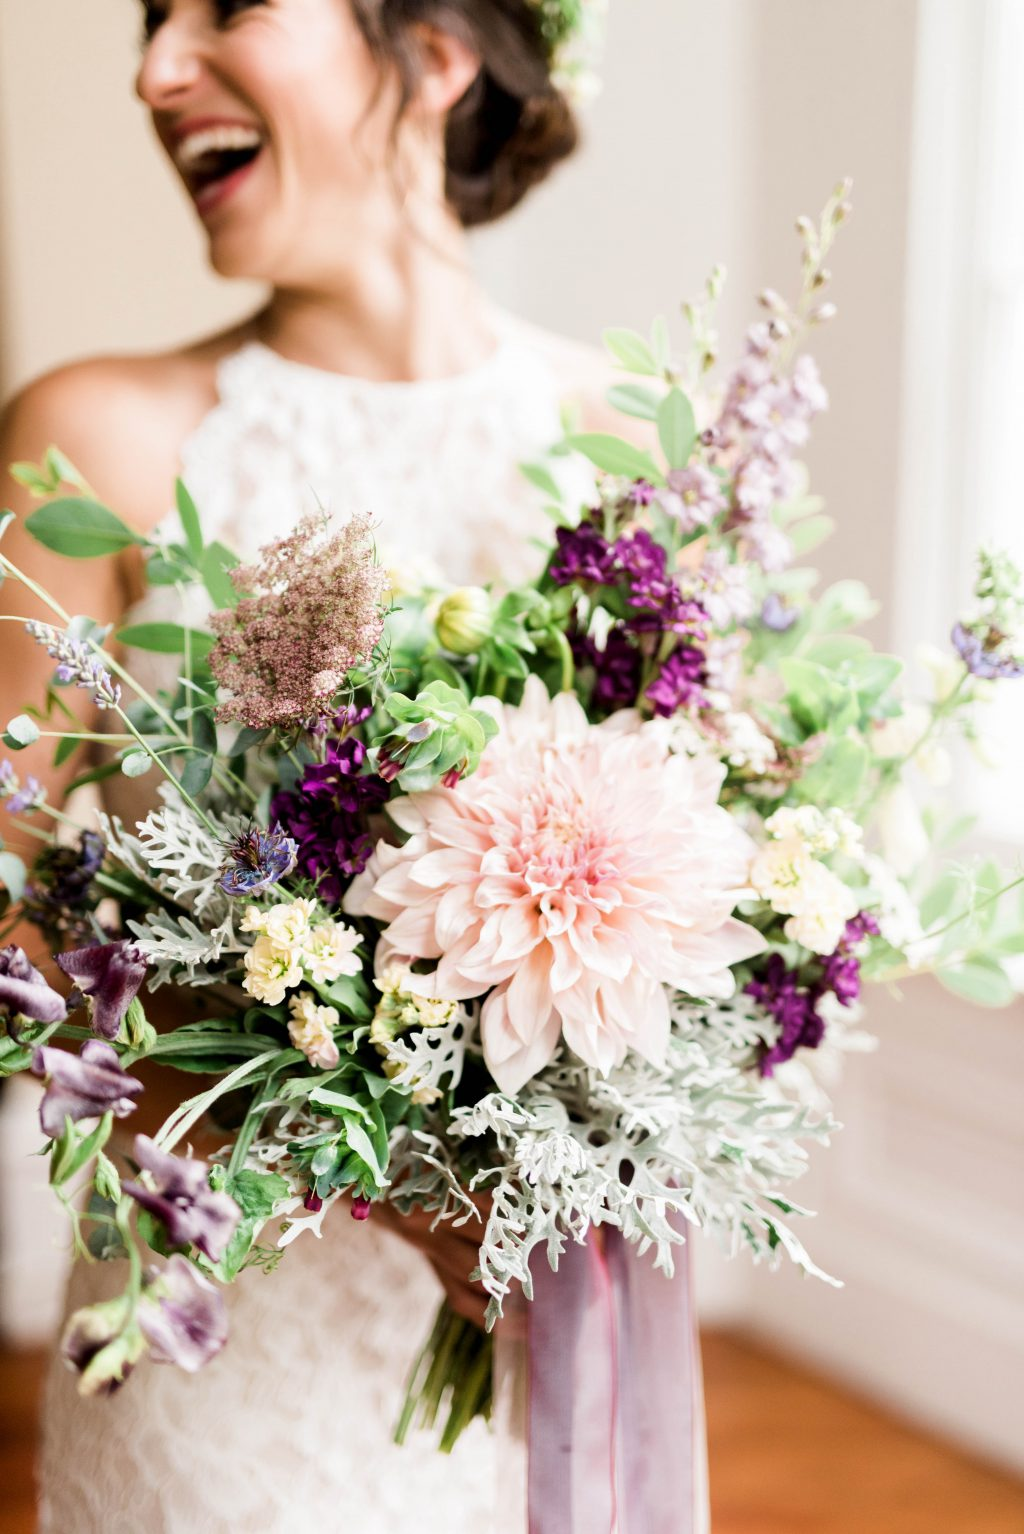 awbury-arboretum-wedding-DIY-boho-summer-haley-richter-photography-046